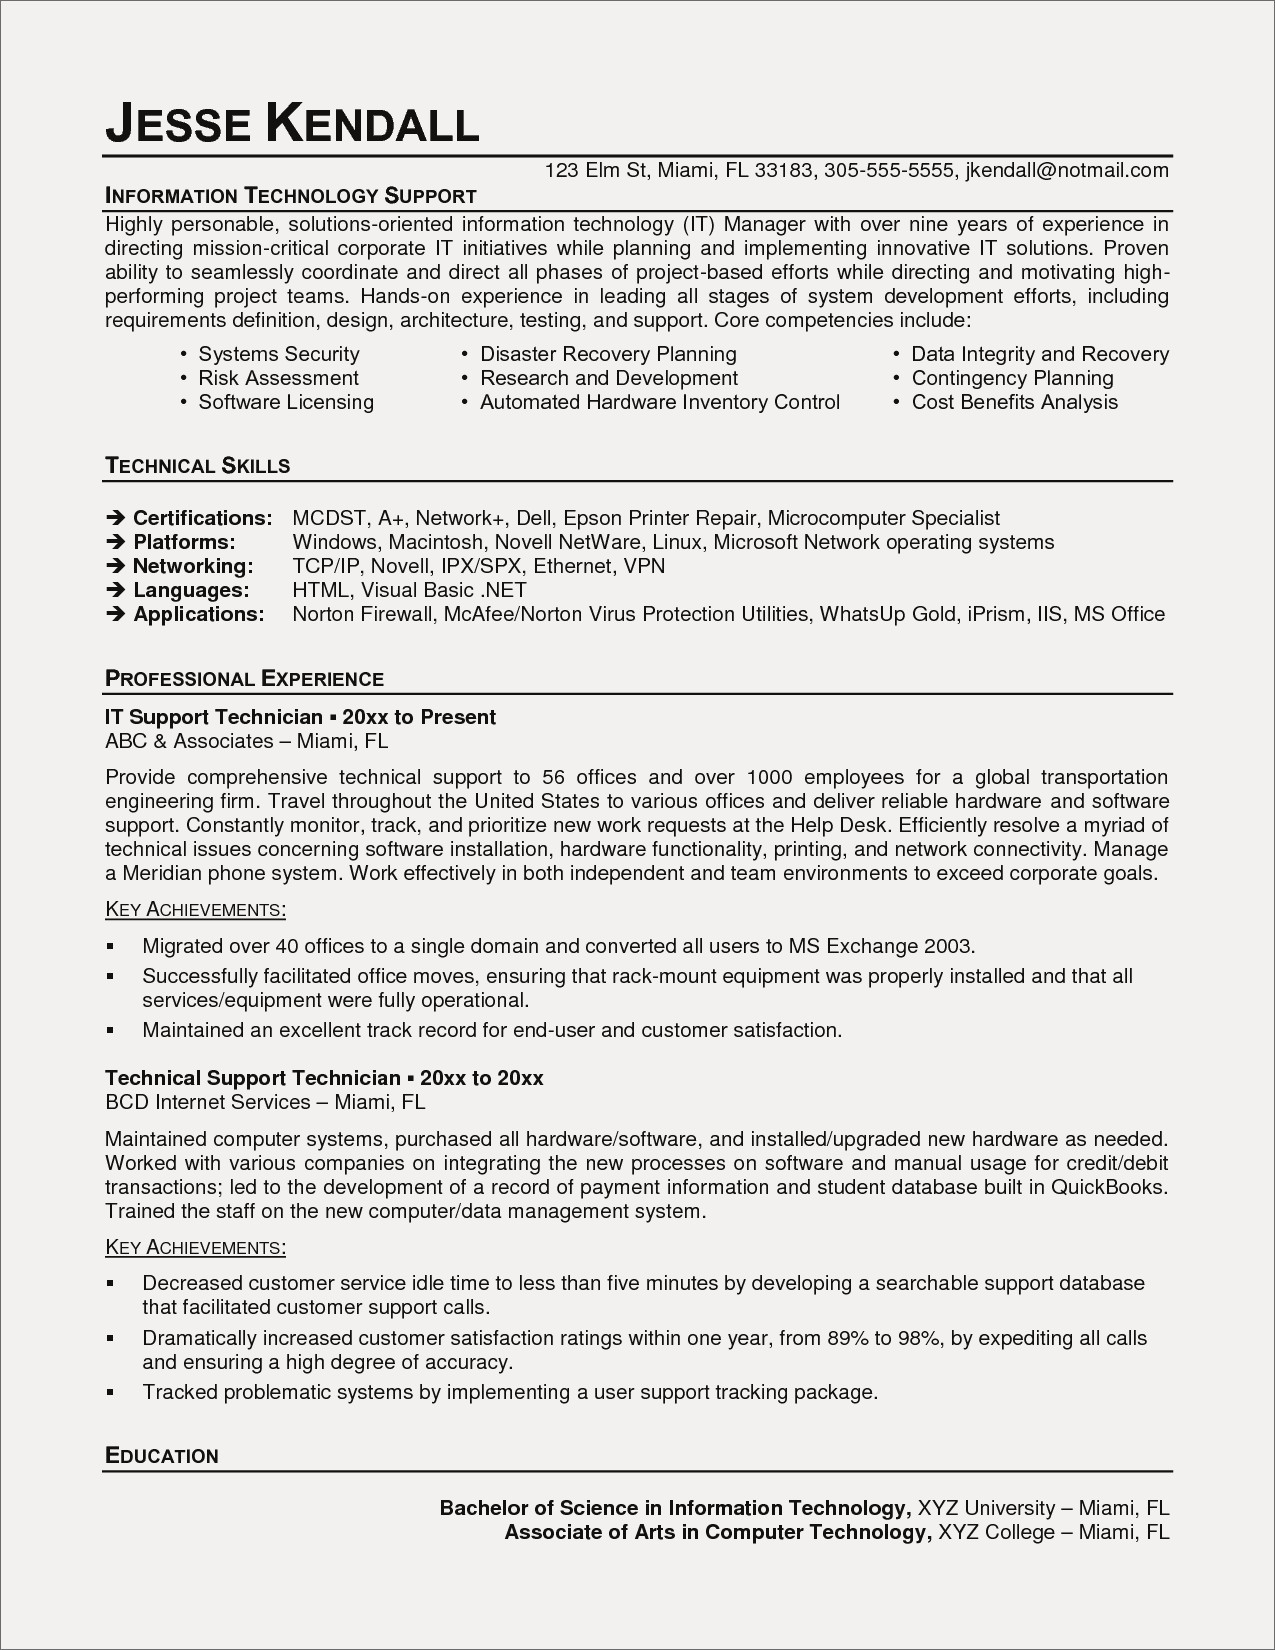 car mechanic resume example-Technician Resume Examples New Auto Mechanic Resume American Resume Sample New Student Resume 0d 16-s